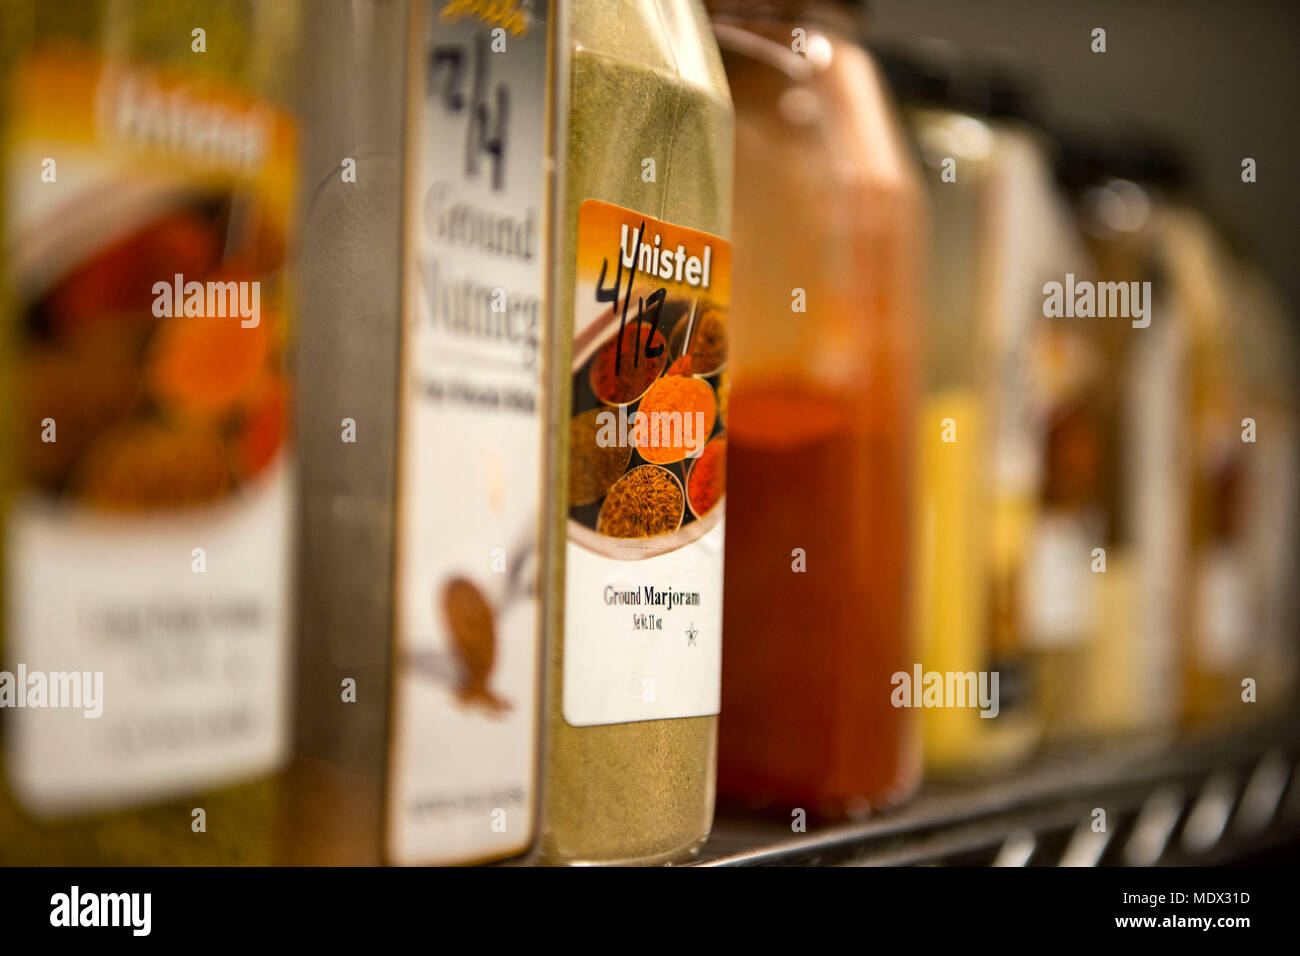 Spices rest on a rack in the Georgia Pines Dining Facility (DFAC), Dec. 12, 2017, at Moody Air Force Base, Ga. Through teamwork, adaption and striving for excellence, the Georgia Pines DFAC Airmen are able to ensure Team Moody is fed and ready to finish the fight. (U.S. Air Force Base photo by Airman 1st Class Erick Requadt) - Stock Image